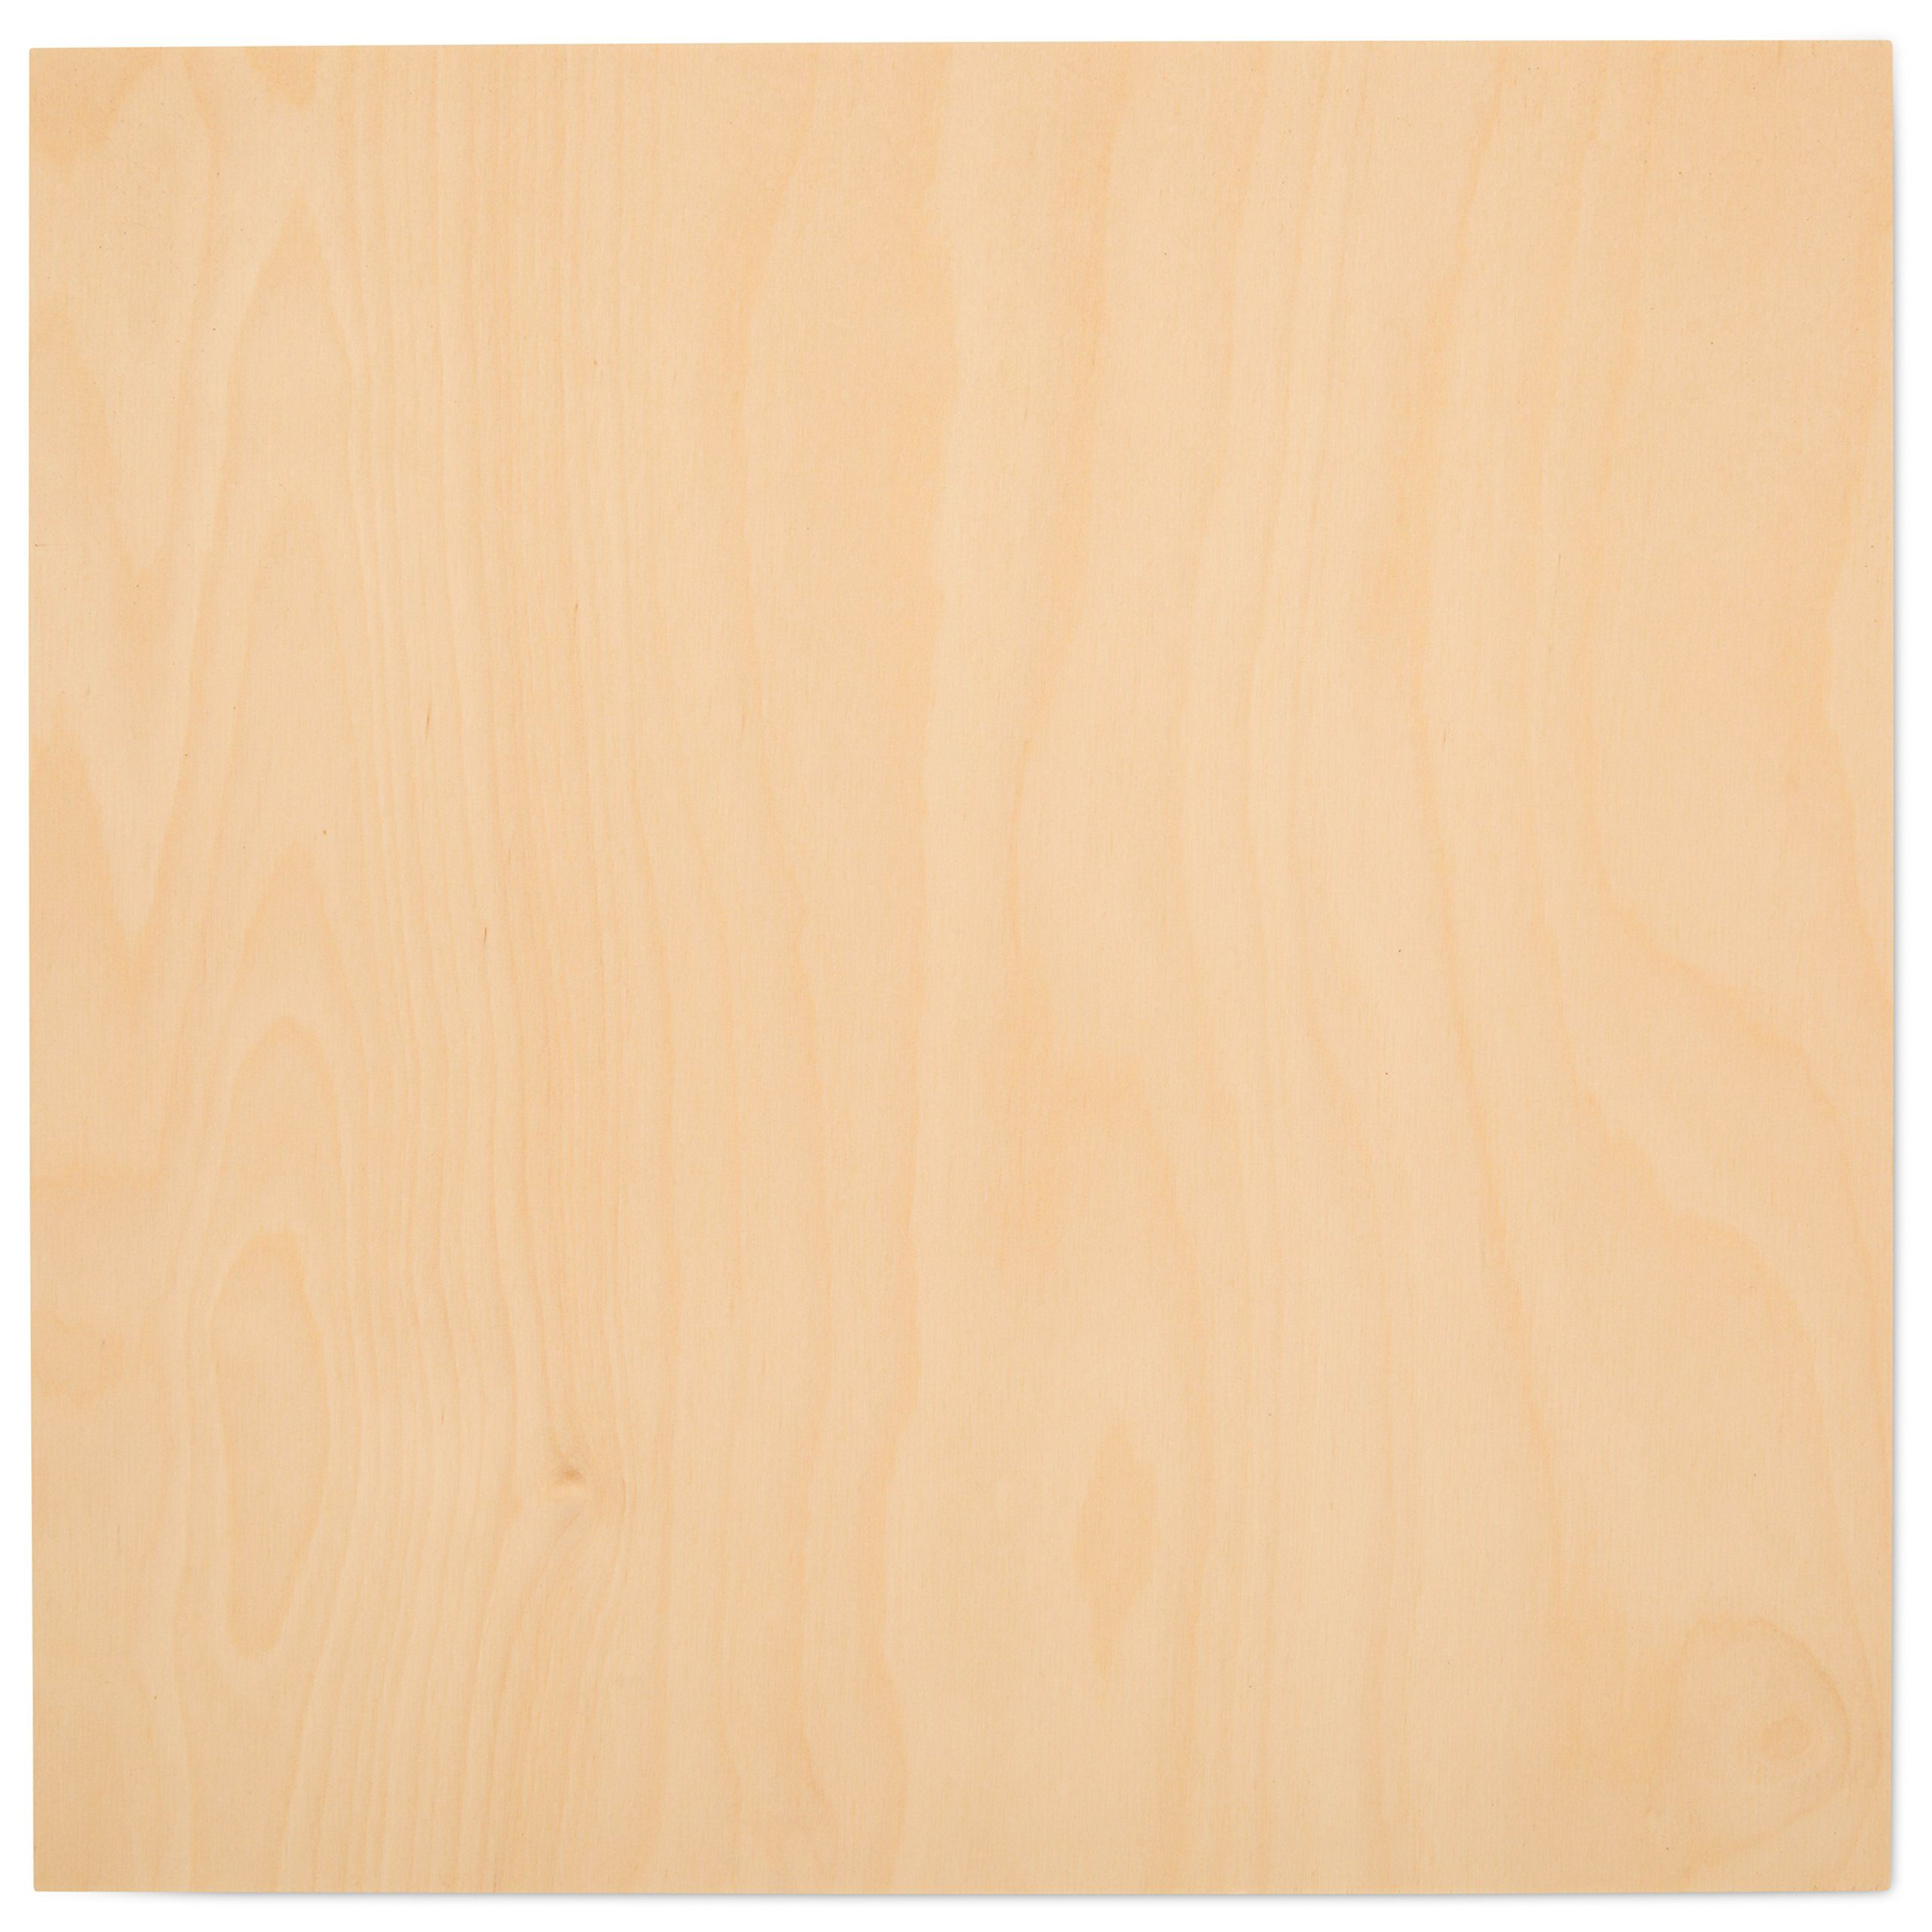 3 Mm 1 8 X 12 X 12 Premium Baltic Birch Plywood A B Bb Grade 45 Flat Sheets By Woodpeckers Check This Amaz Baltic Birch Plywood Birch Plywood Wood Veneer